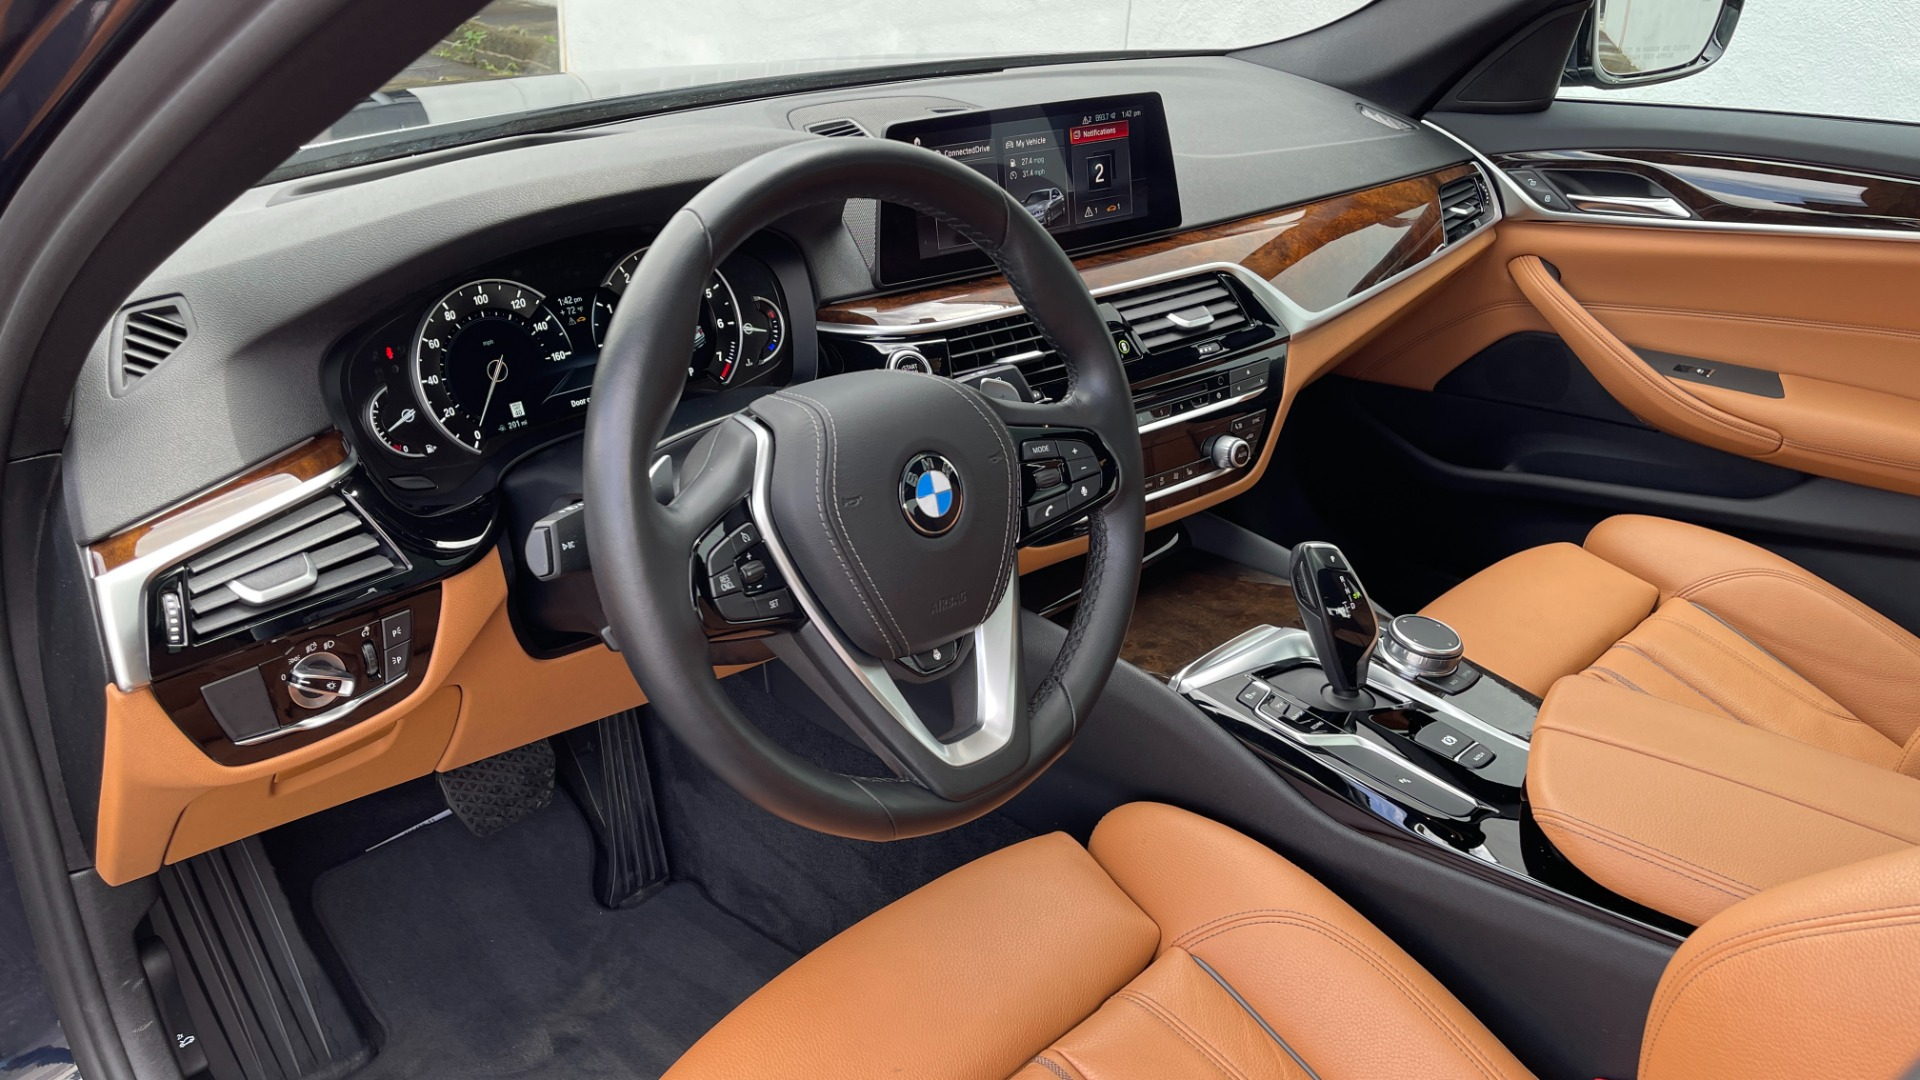 Used 2019 BMW 5 SERIES 530I XDRIVE / CONV PKG / PDC / NAV / SUNROOF / HTD STS / REARIEW for sale $39,595 at Formula Imports in Charlotte NC 28227 28